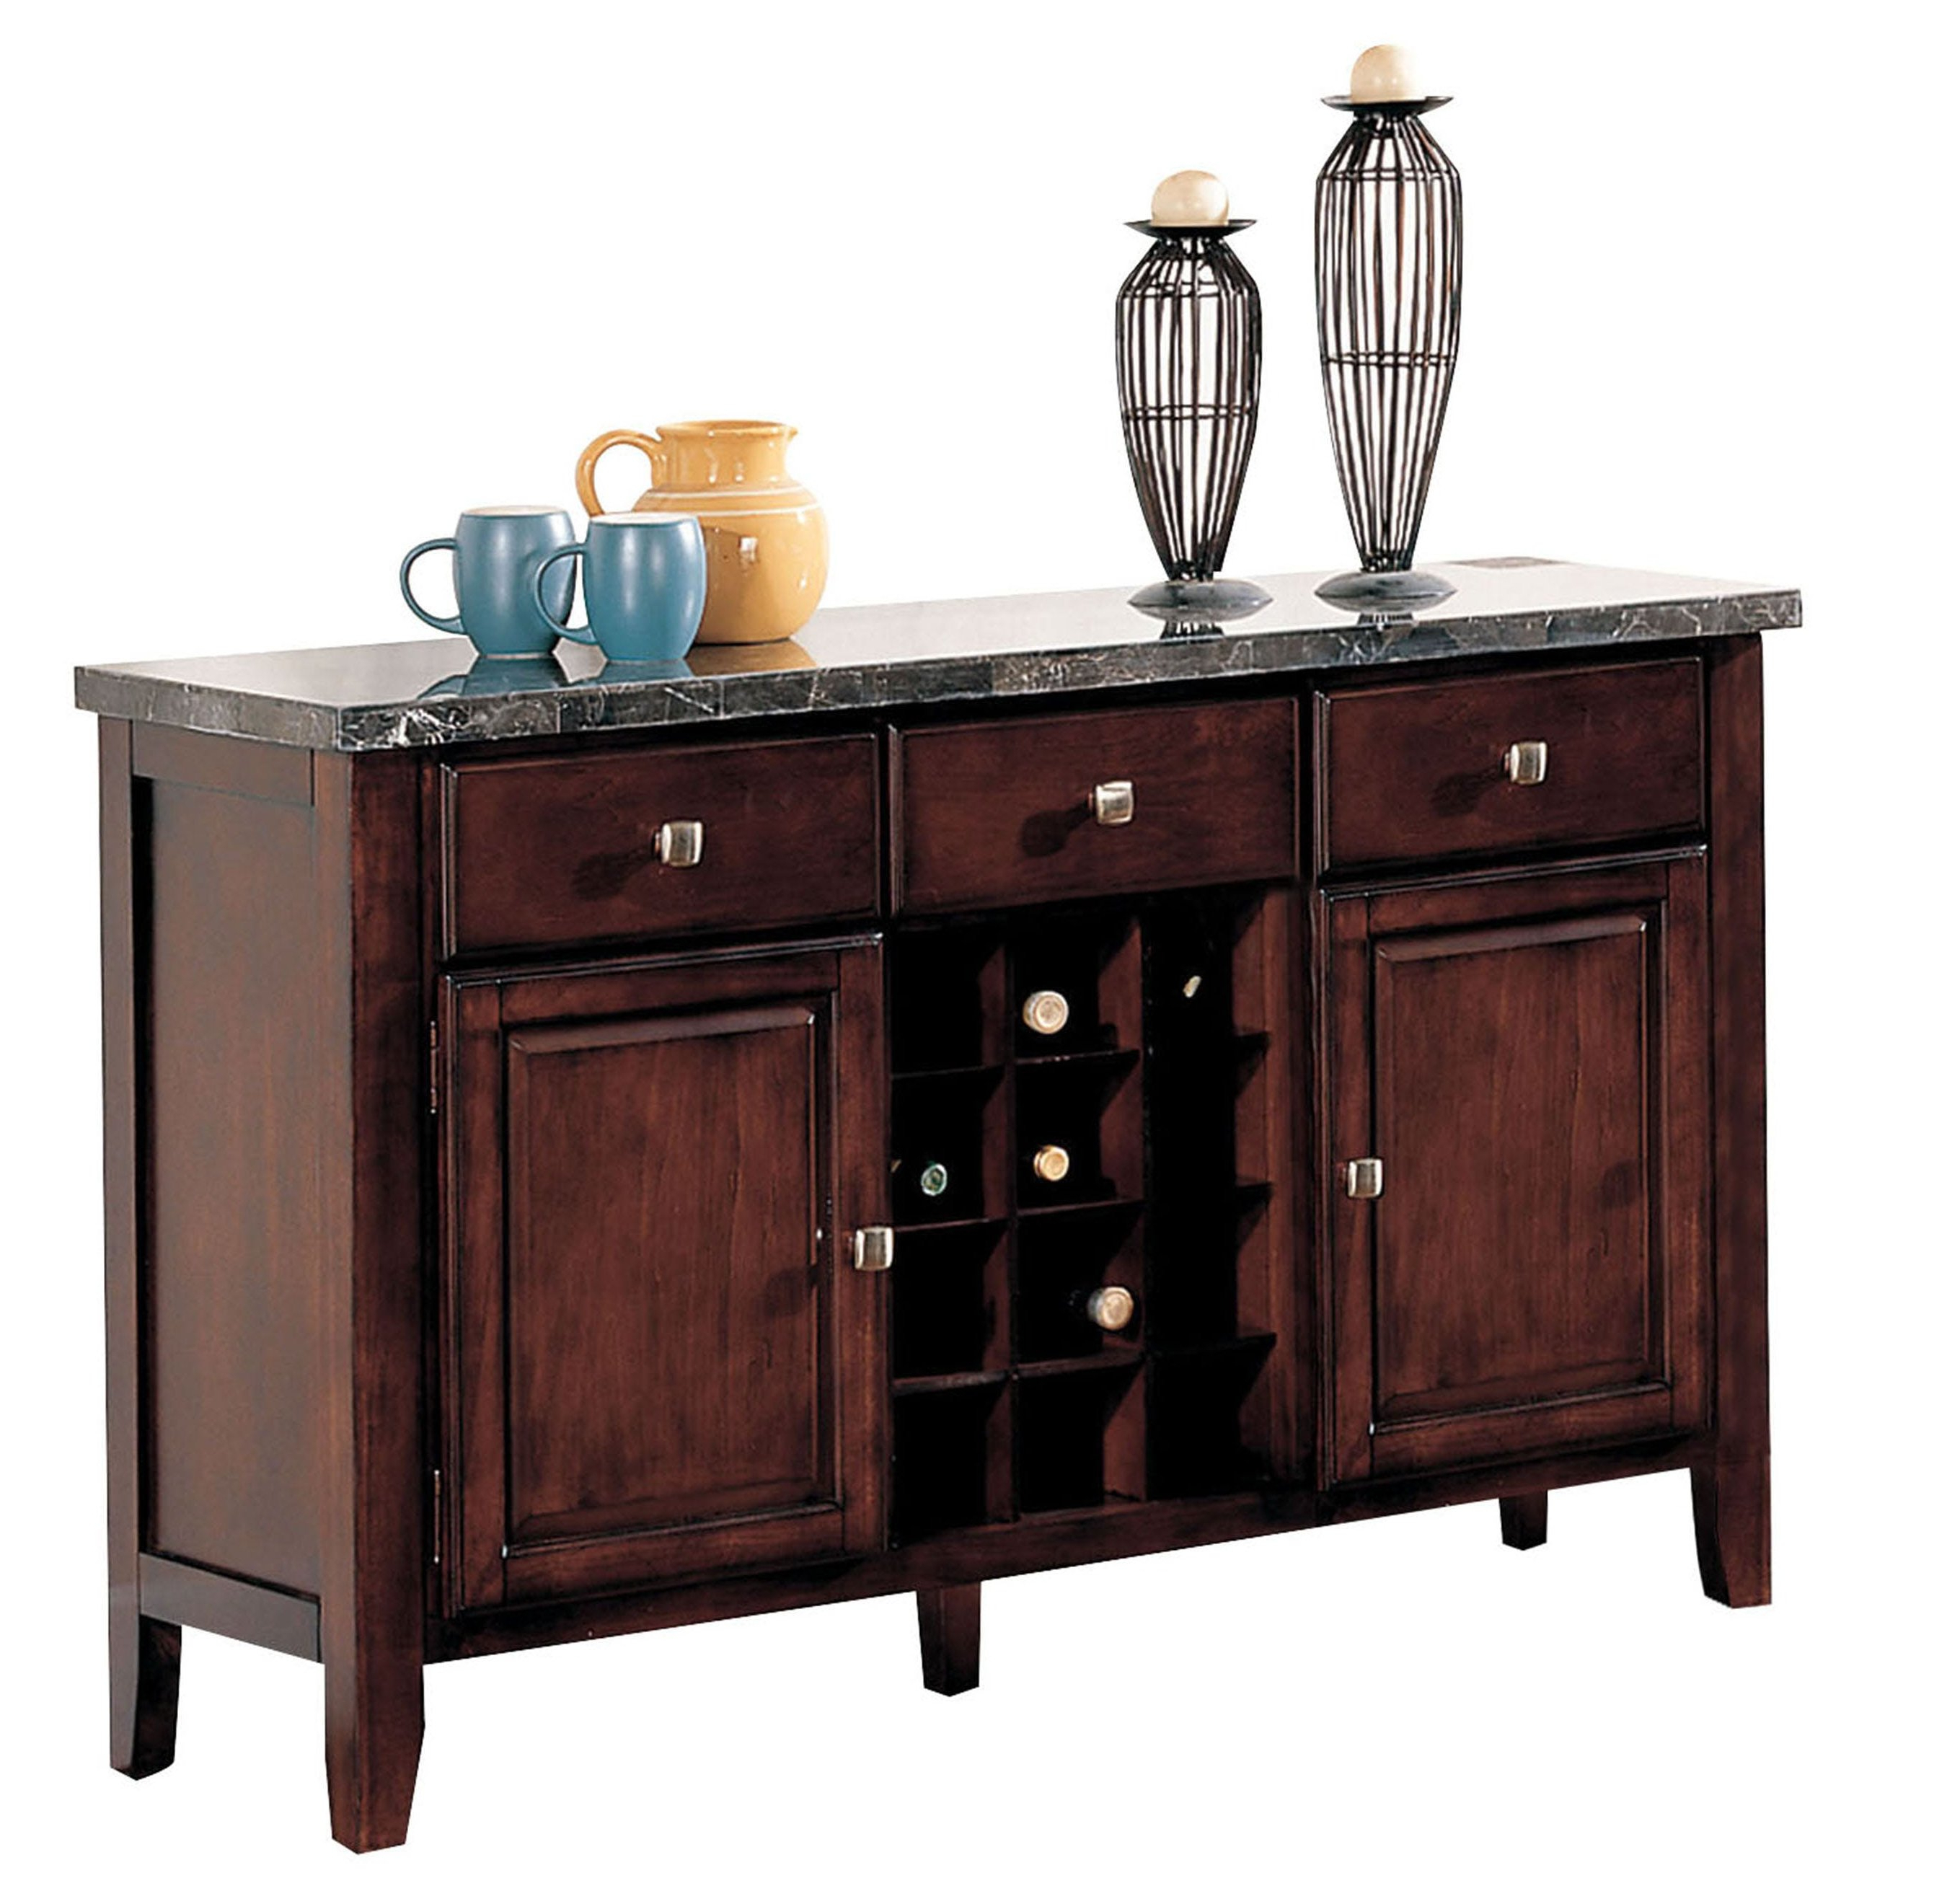 Hinkley Sideboard Pertaining To Best And Newest Nashoba Sideboards (Gallery 16 of 20)